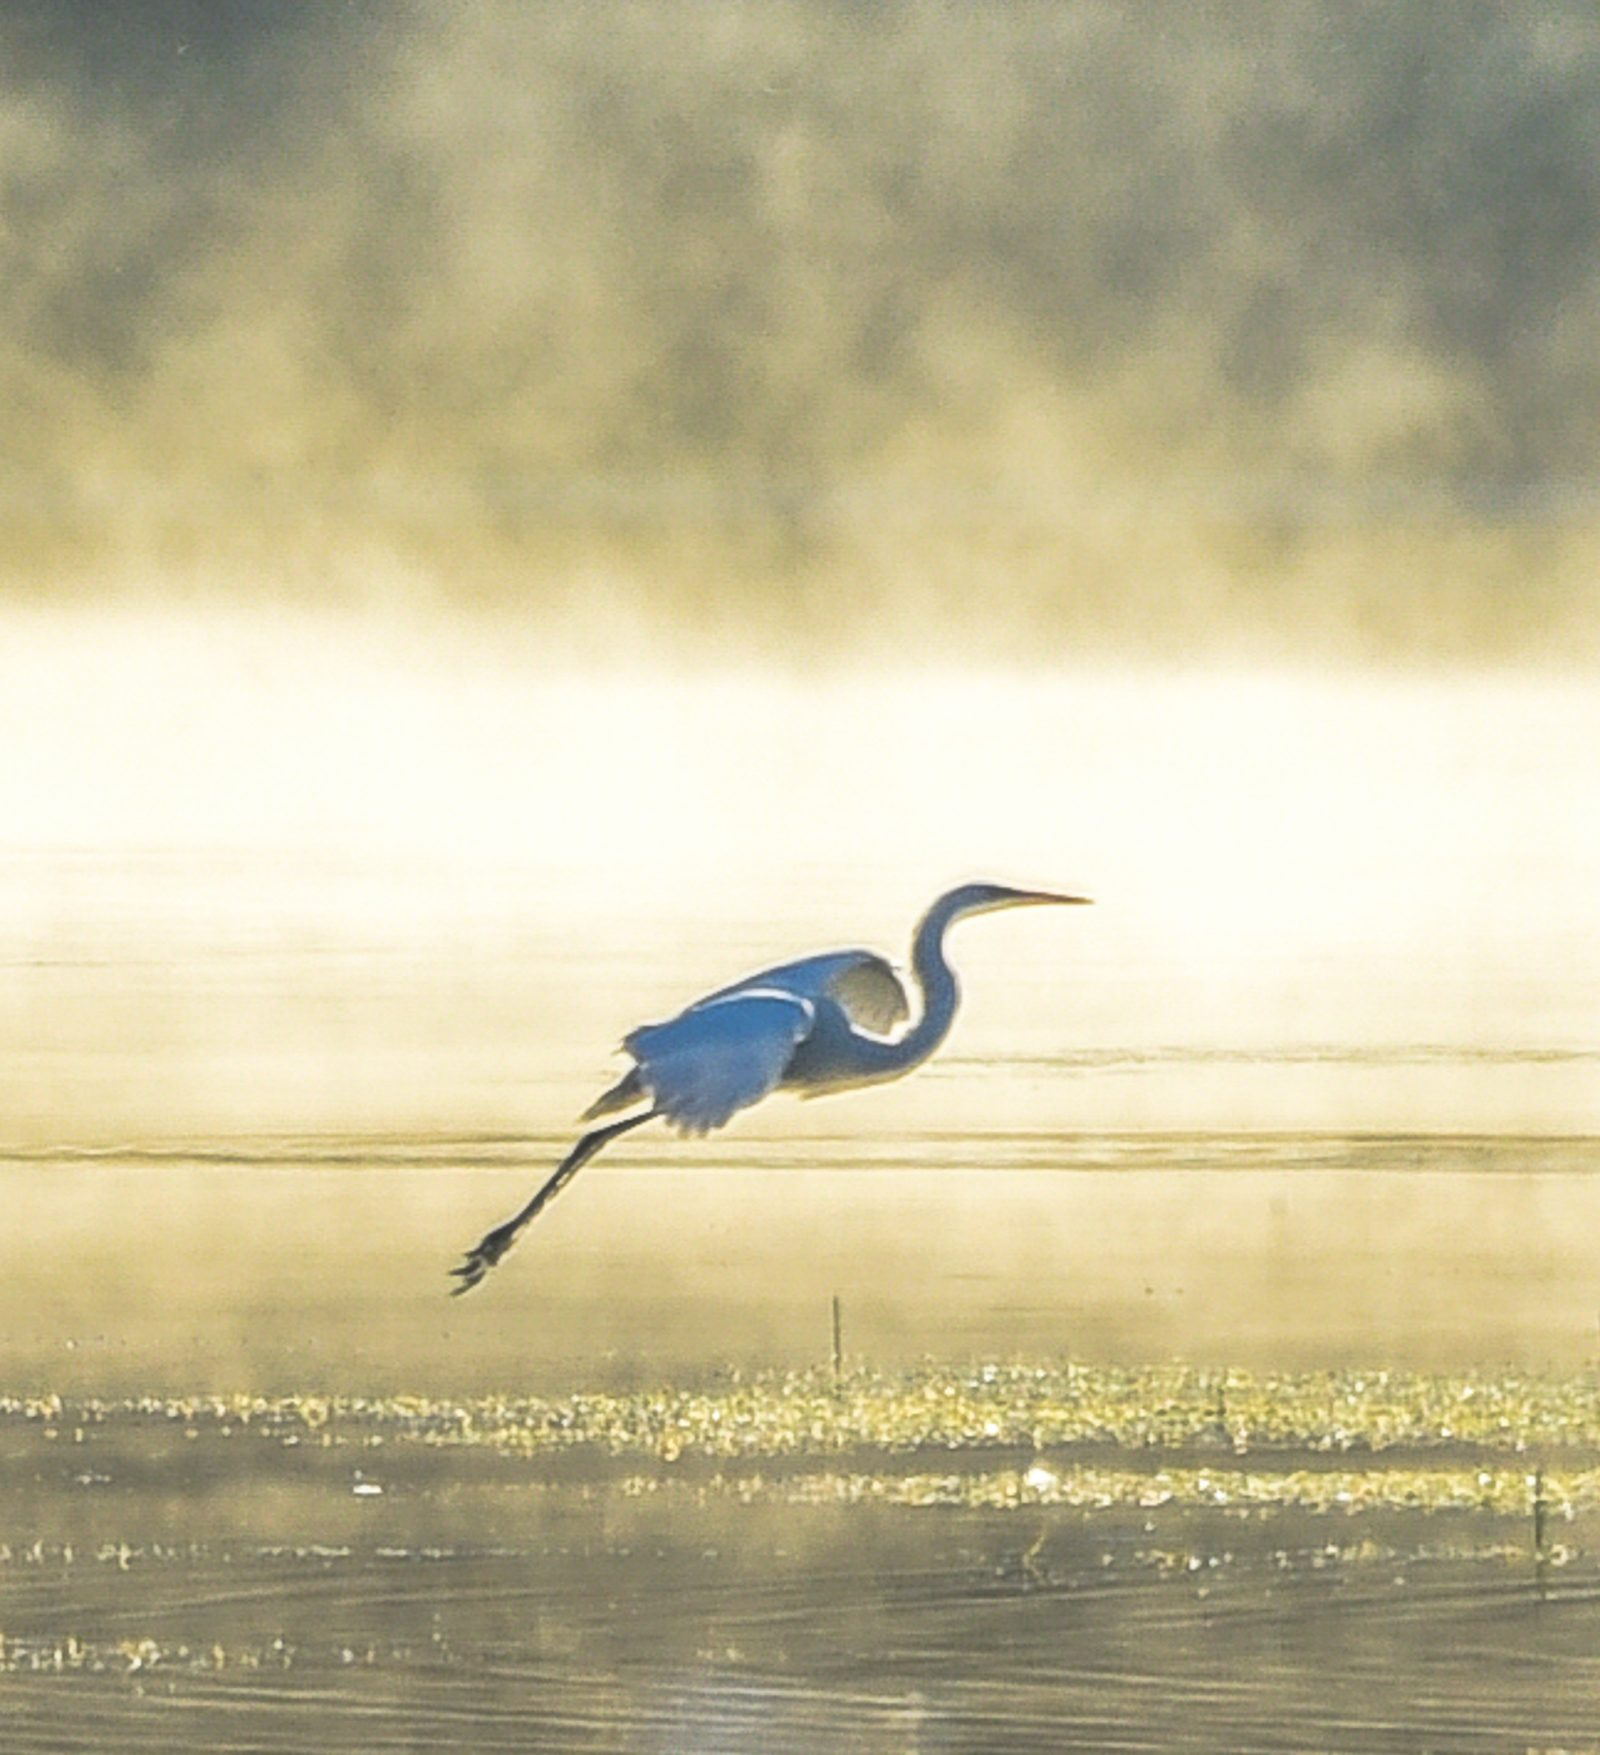 Flight Out of the Fog